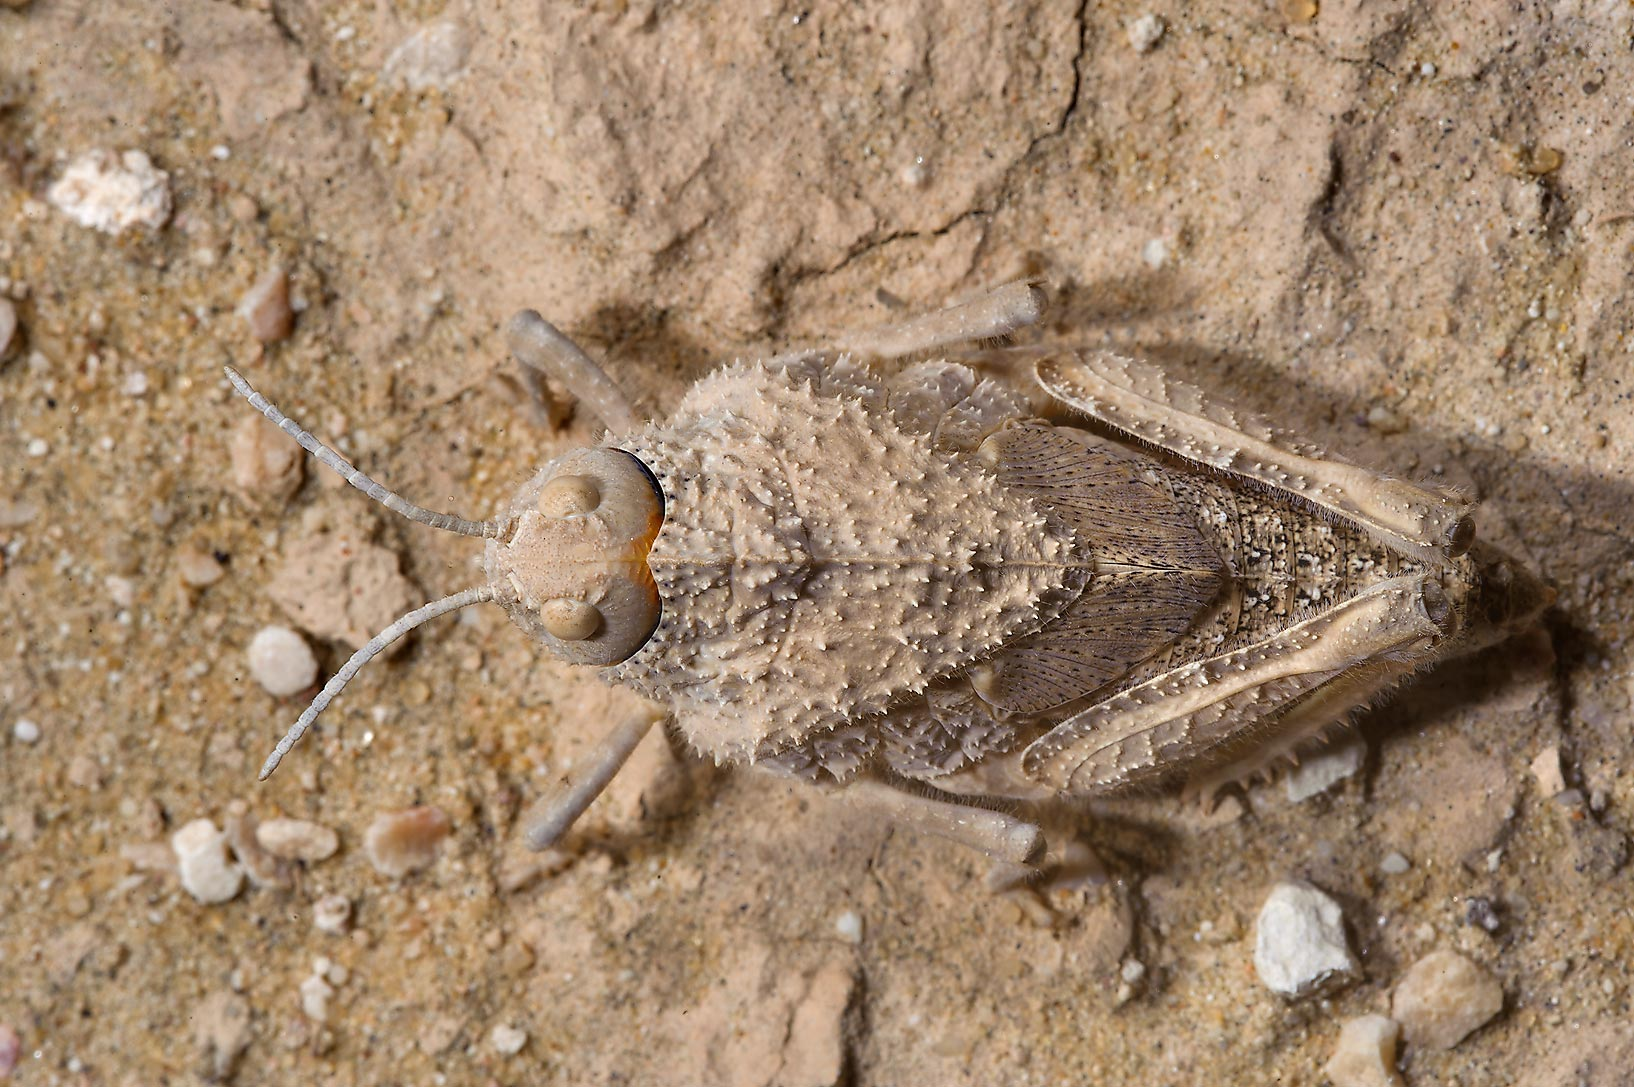 Squat shaped, camouflaged body of grasshopper...insignis near Harrarah. Southern Qatar